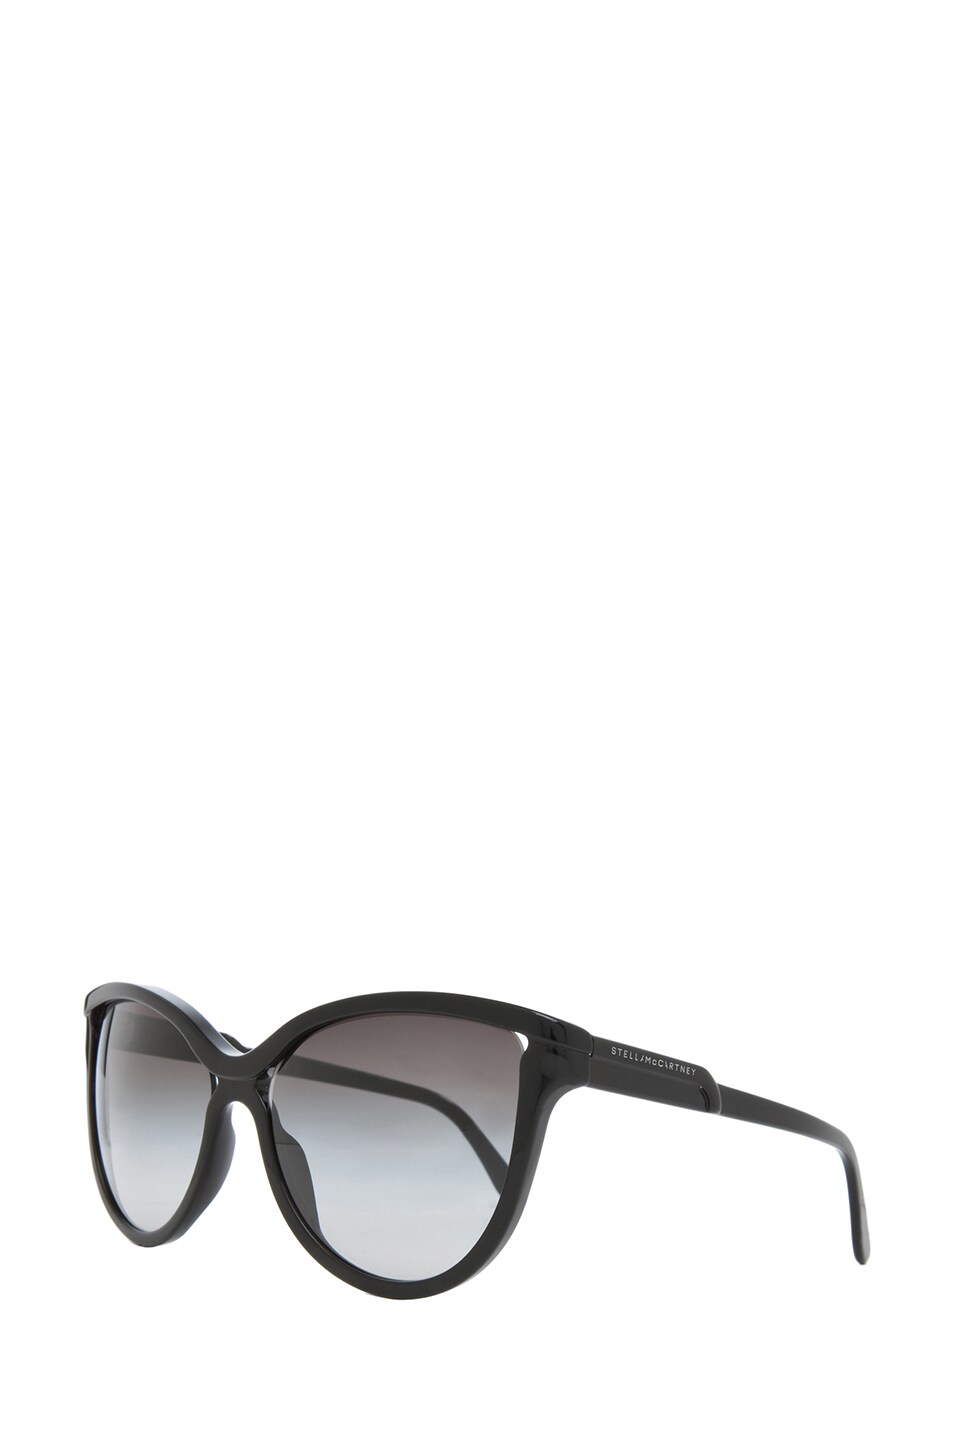 Image 2 of Stella McCartney Rounded Cat Eye Sunglasses in Black & Grey Gradient